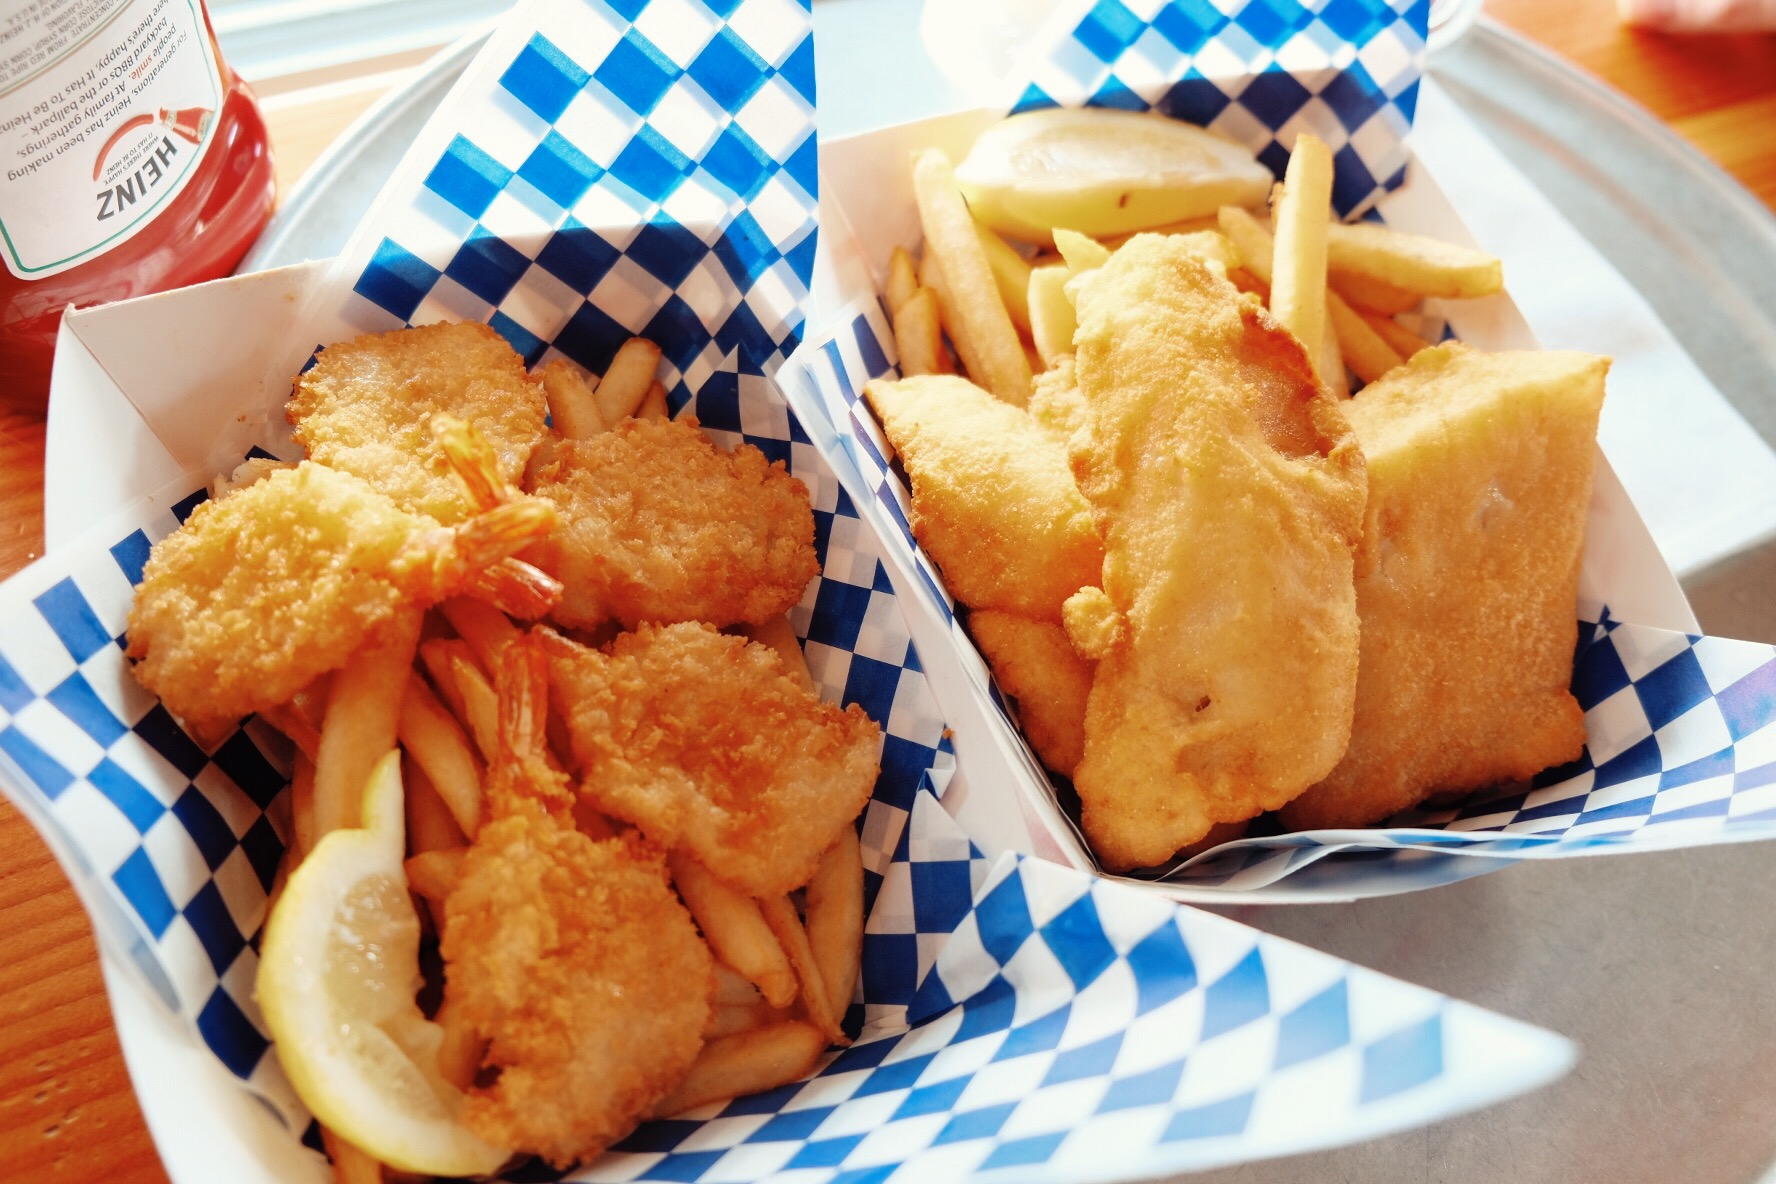 Tom's Fish & Chips